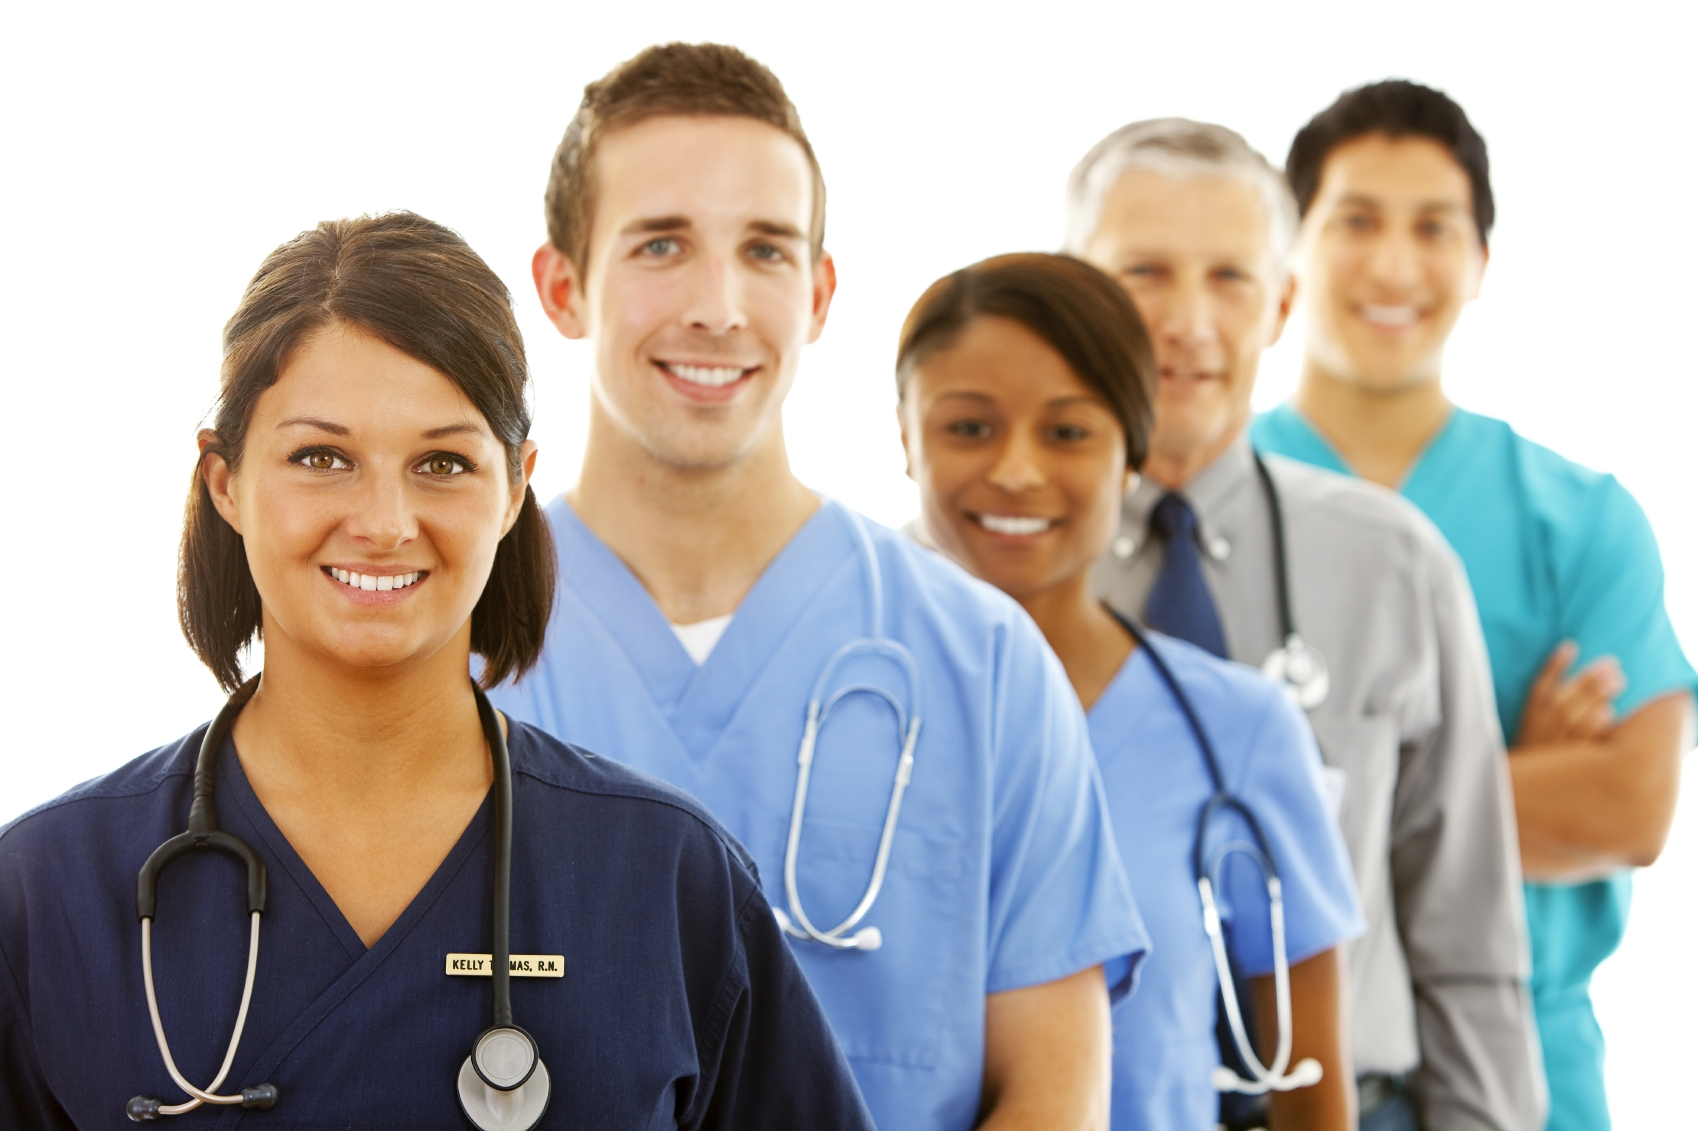 This image is of young doctors and nurses, some of the professions that students in this course may eventually get.